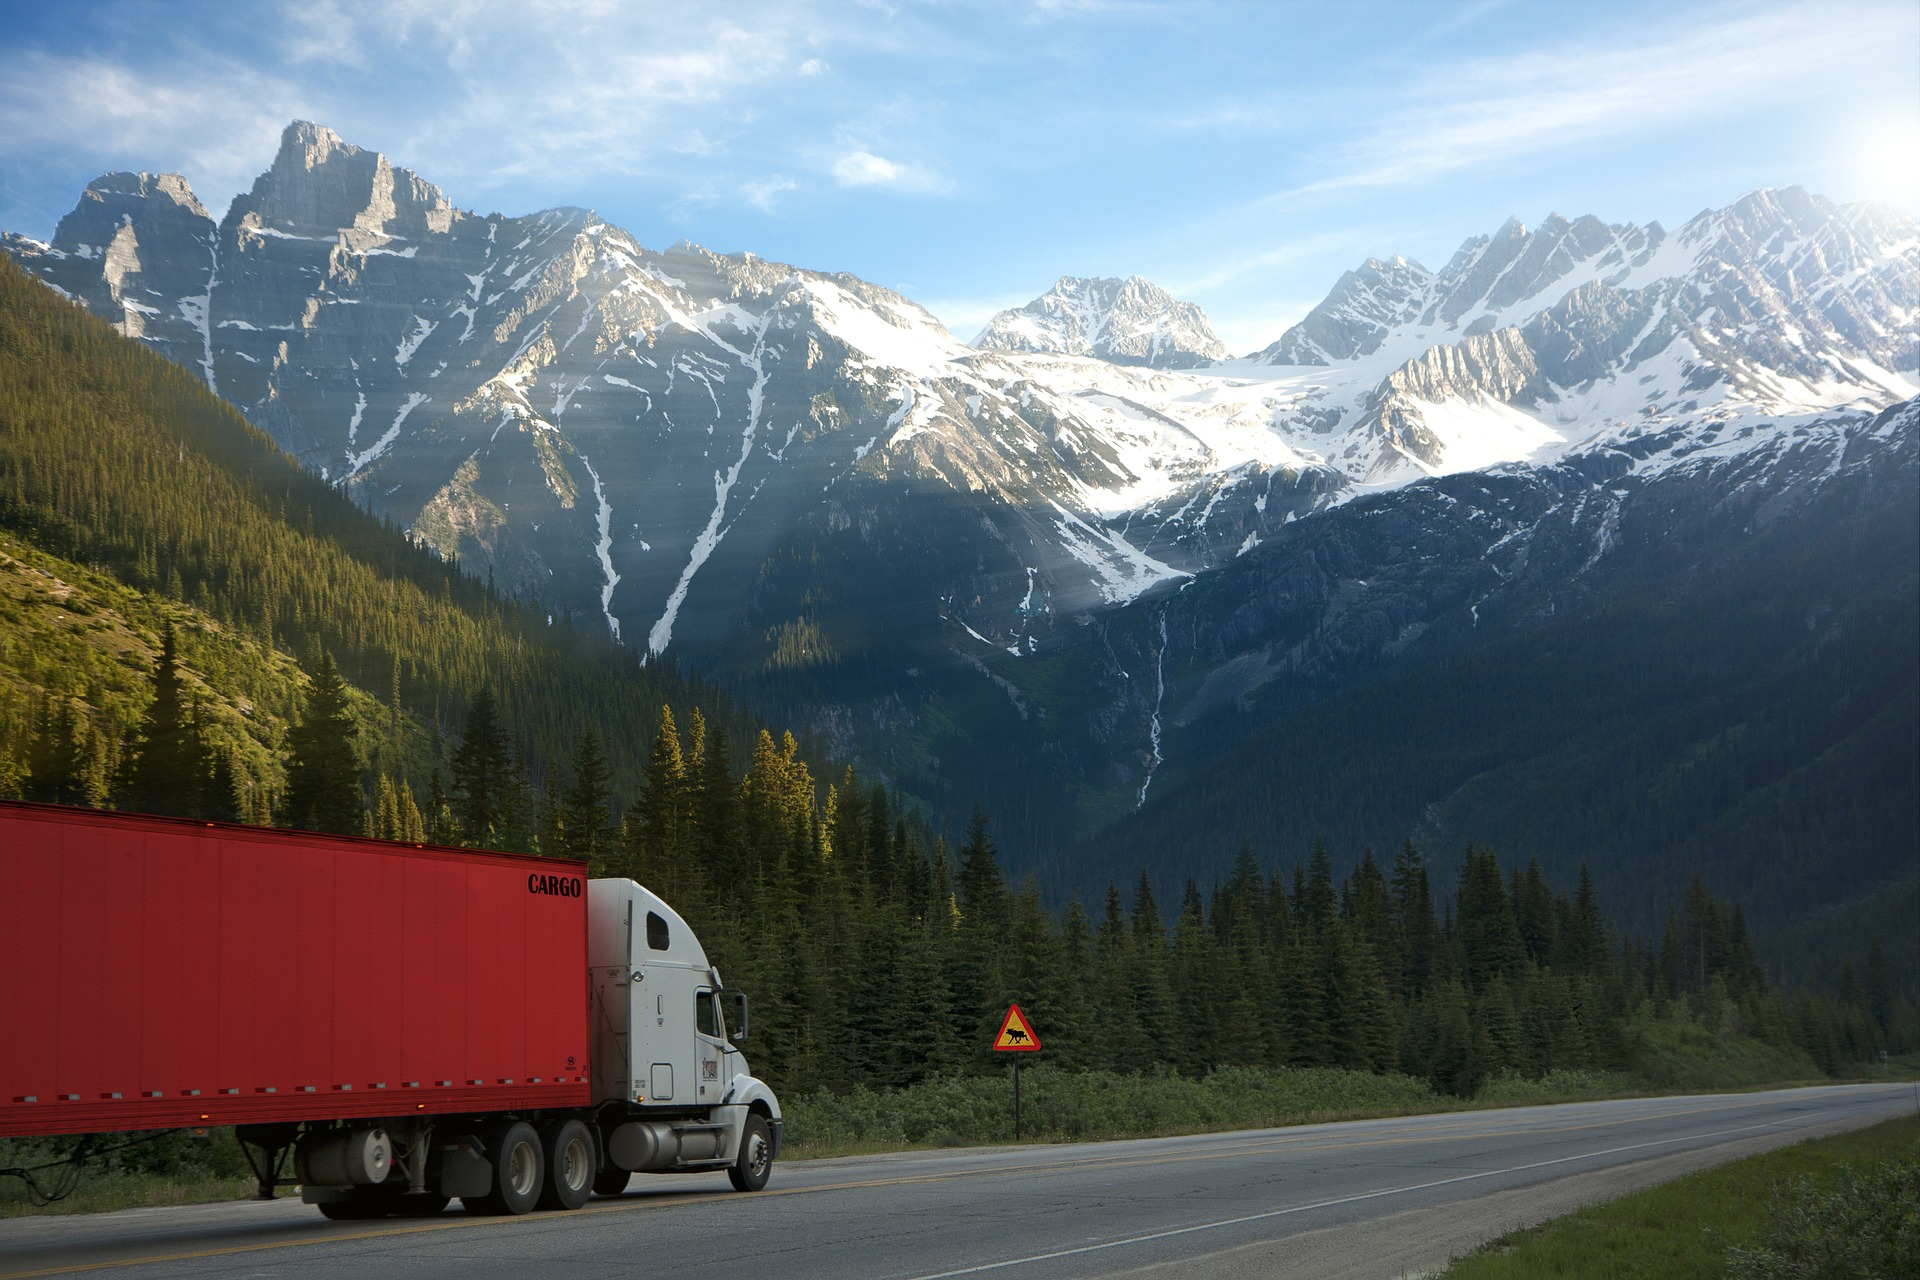 Truck driving through mountains